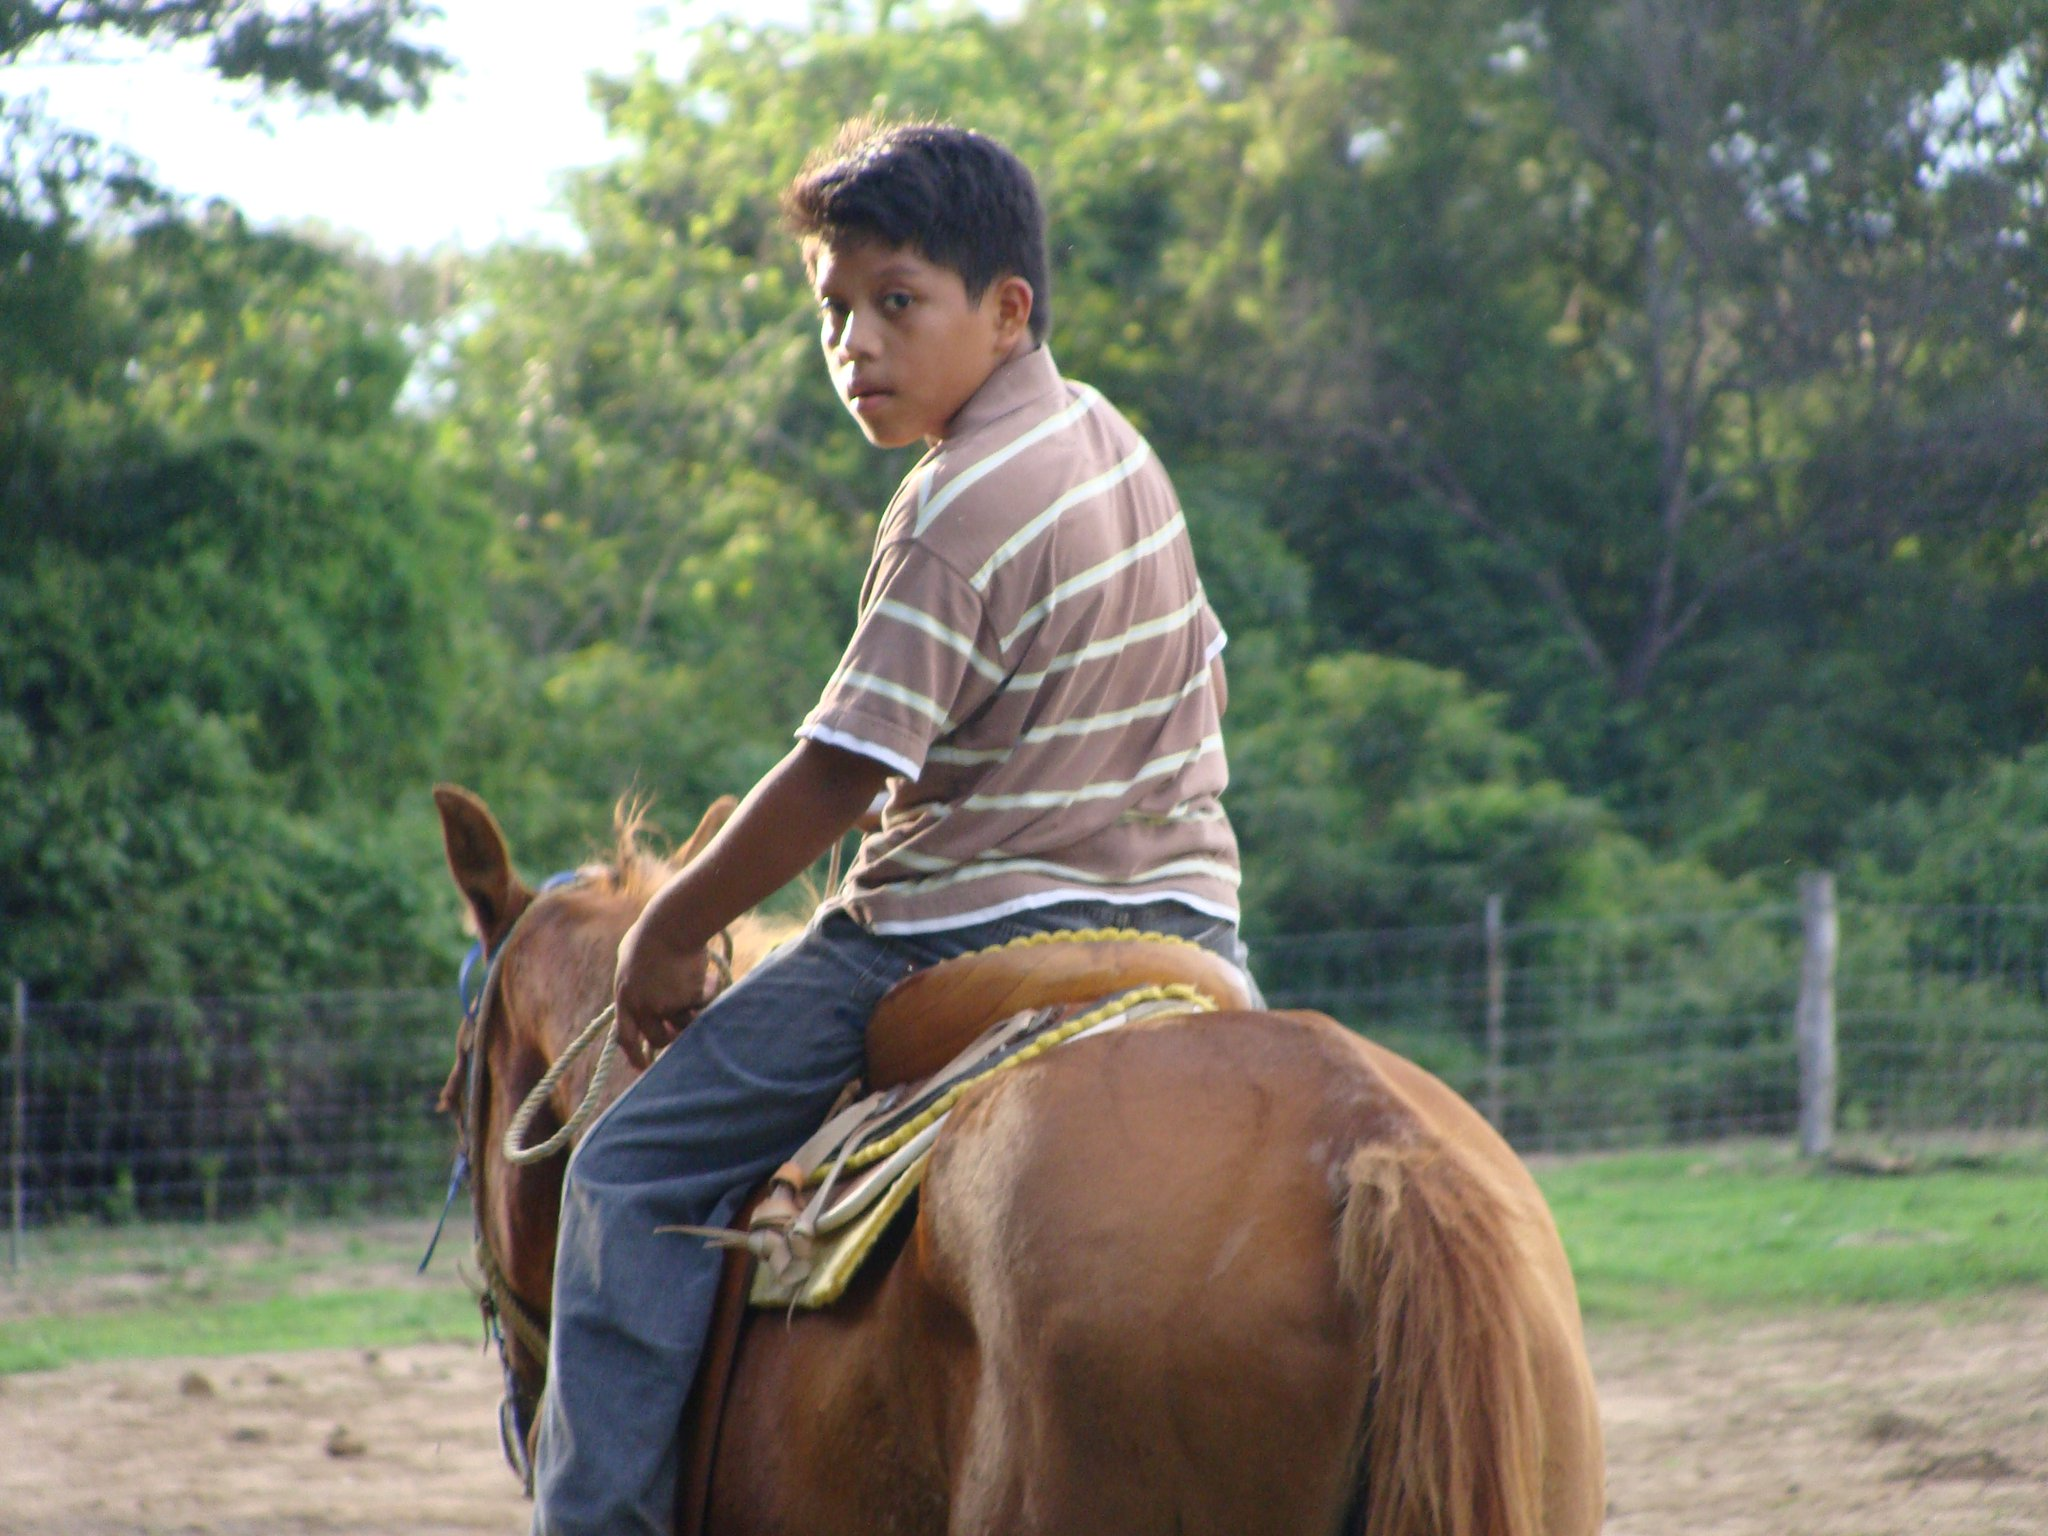 Horseback riding is great therapy for children who have been abused.